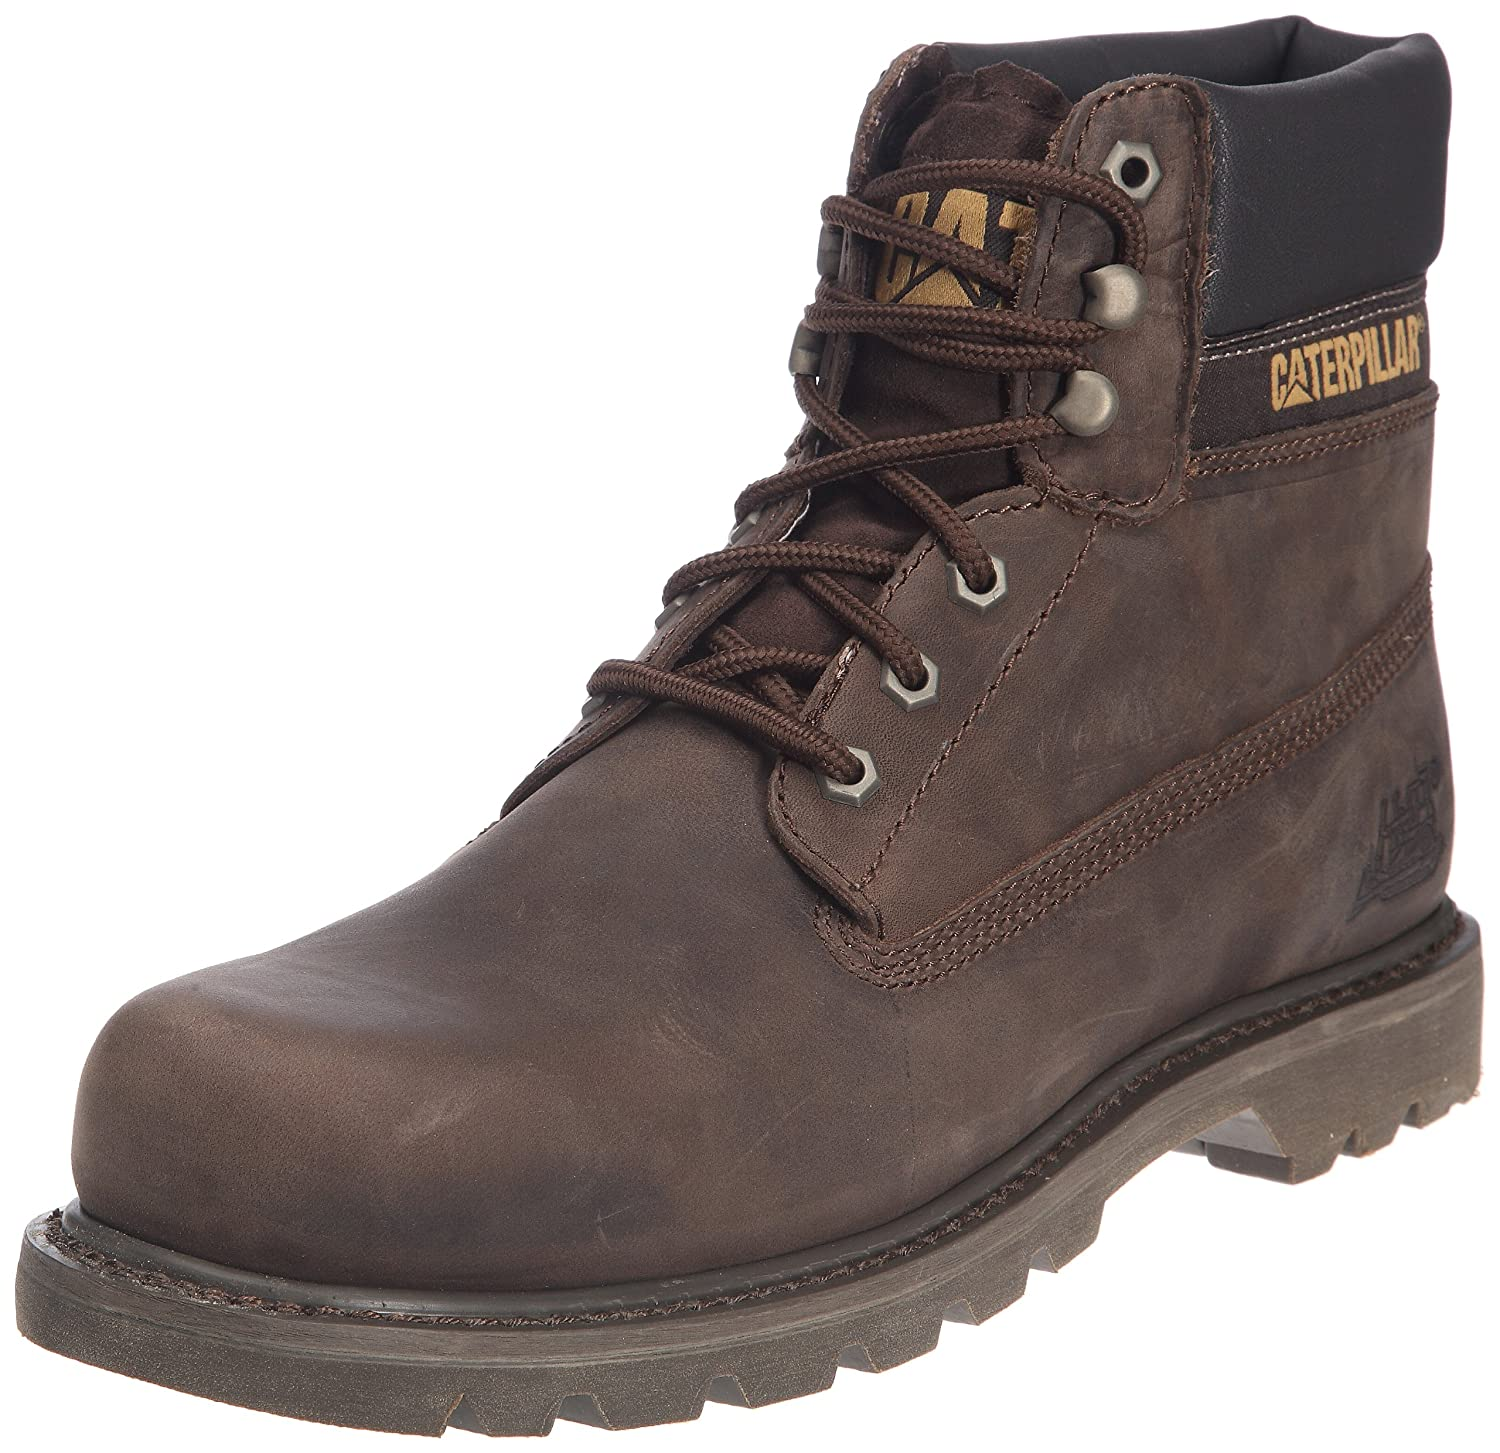 TALLA 45 EU. Cat Footwear Botas Colorado